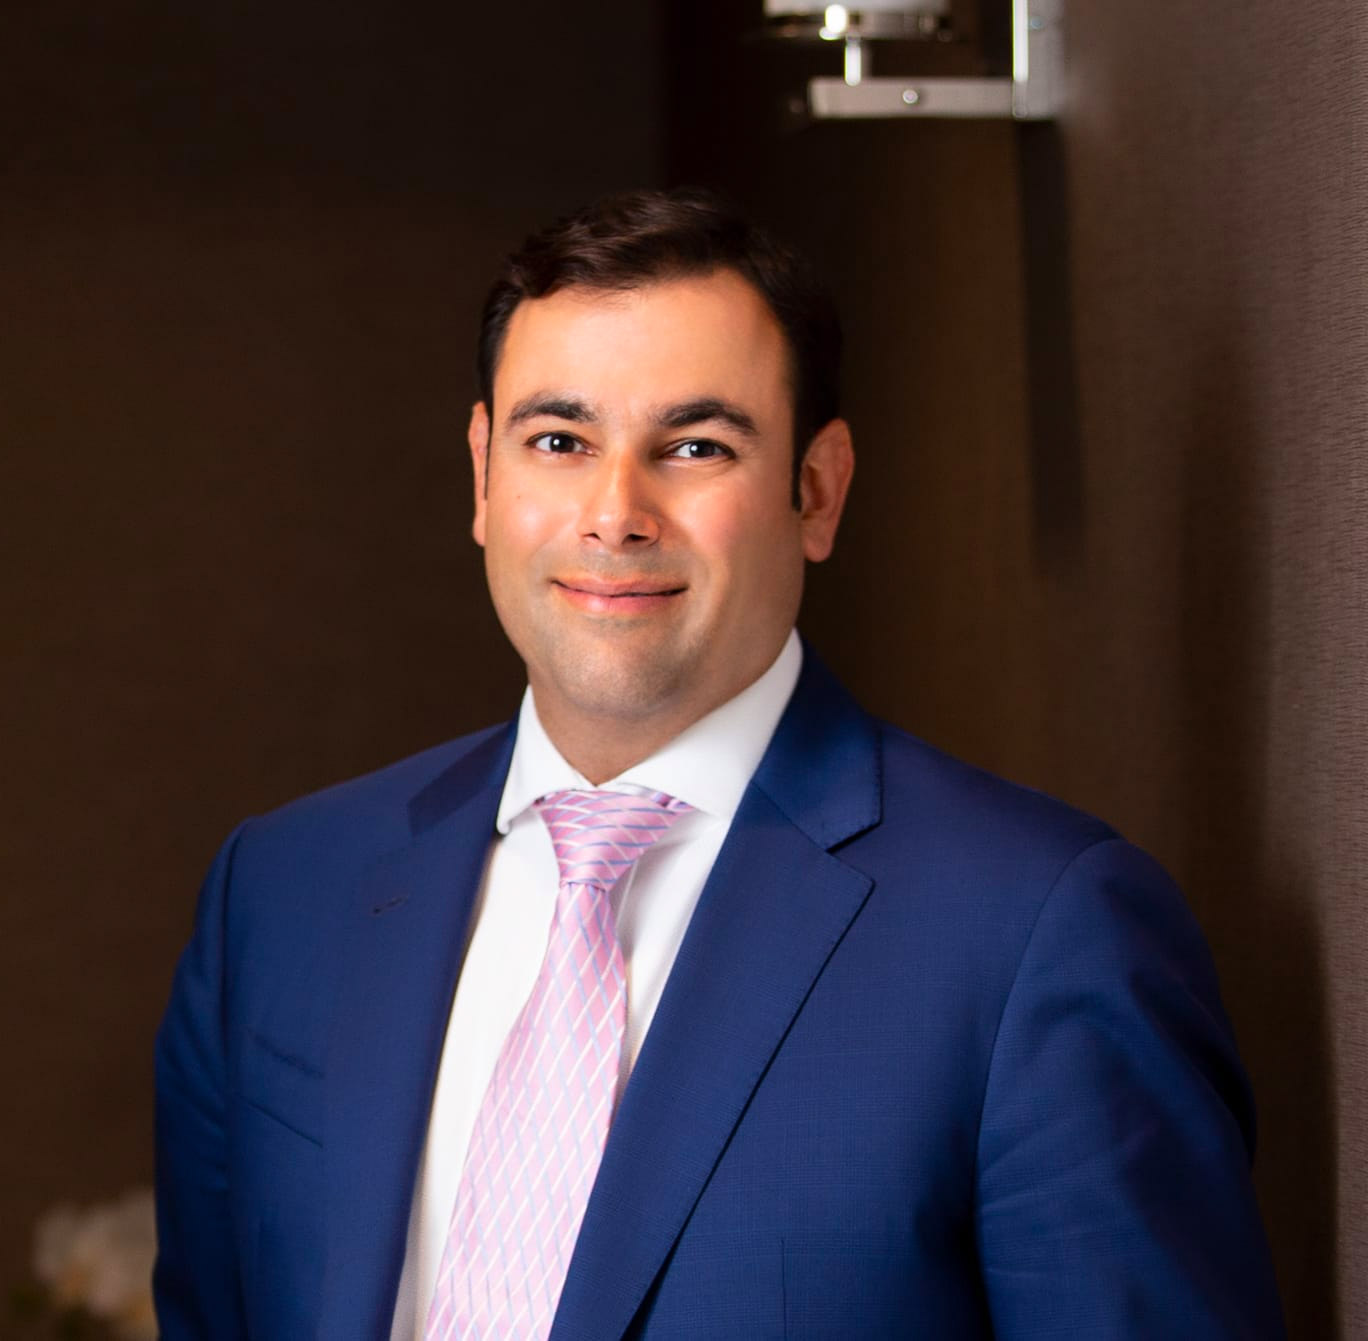 Facial plastic surgeon, Dr. Farhad Ardesh